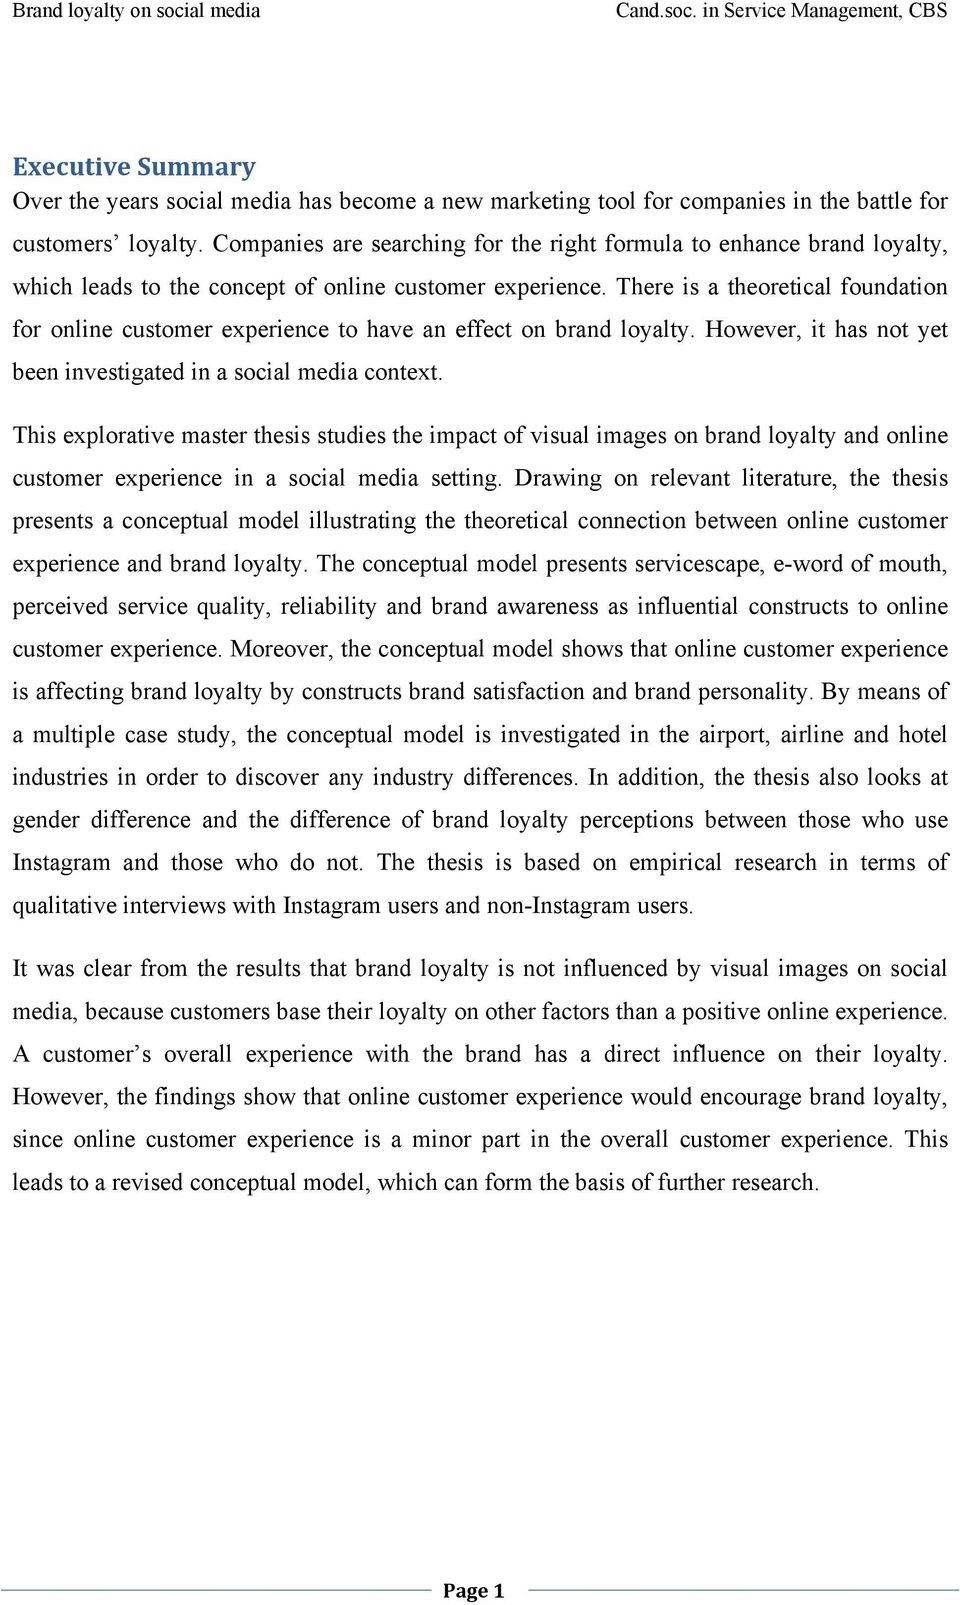 There is a theoretical foundation for online customer experience to have an effect on brand loyalty. However, it has not yet been investigated in a social media context.